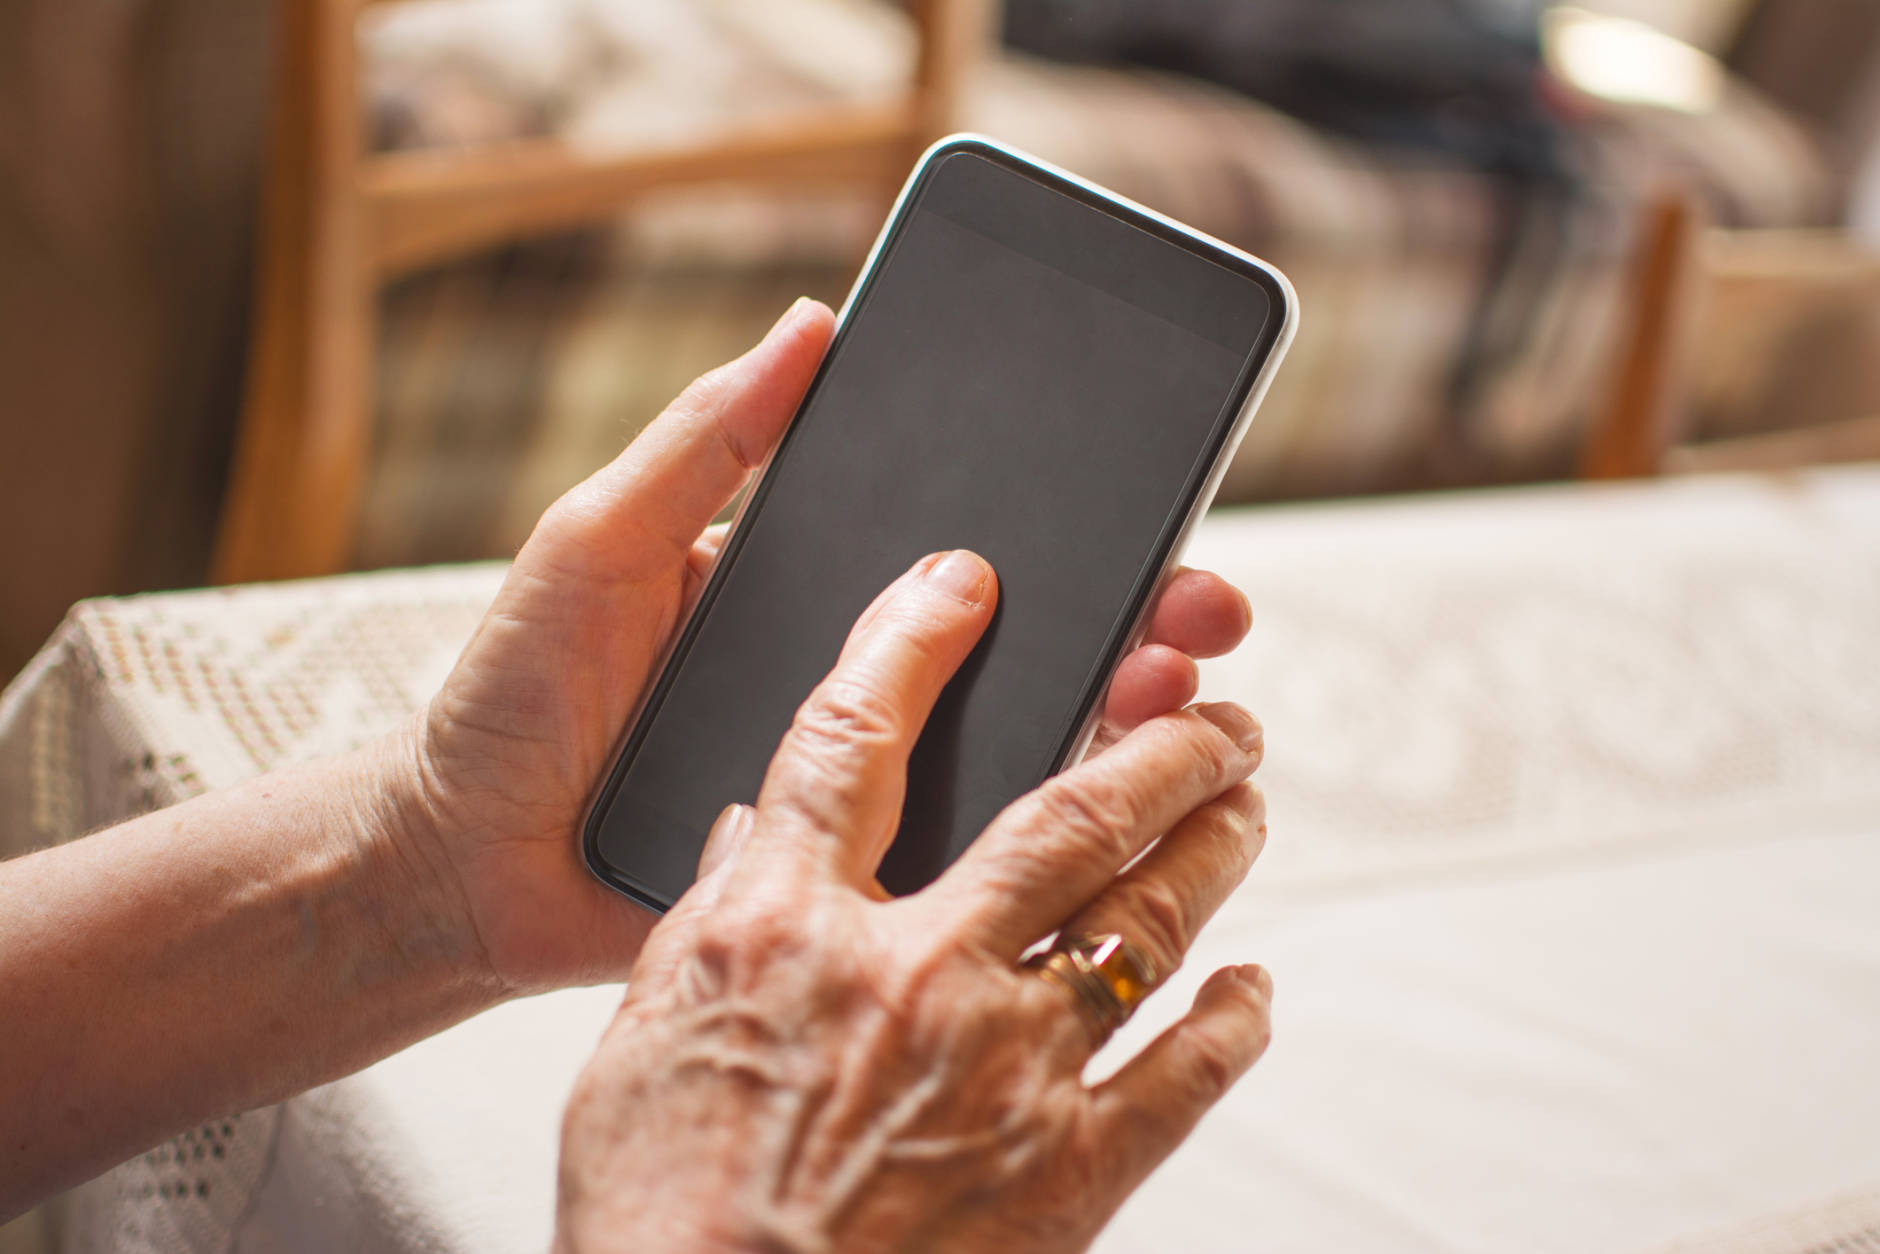 Prince George's County Fire/EMS is launching a new program to provide frequent 911 callers with more healthcare options and free up emergency responders. (Getty Images/iStockphoto)